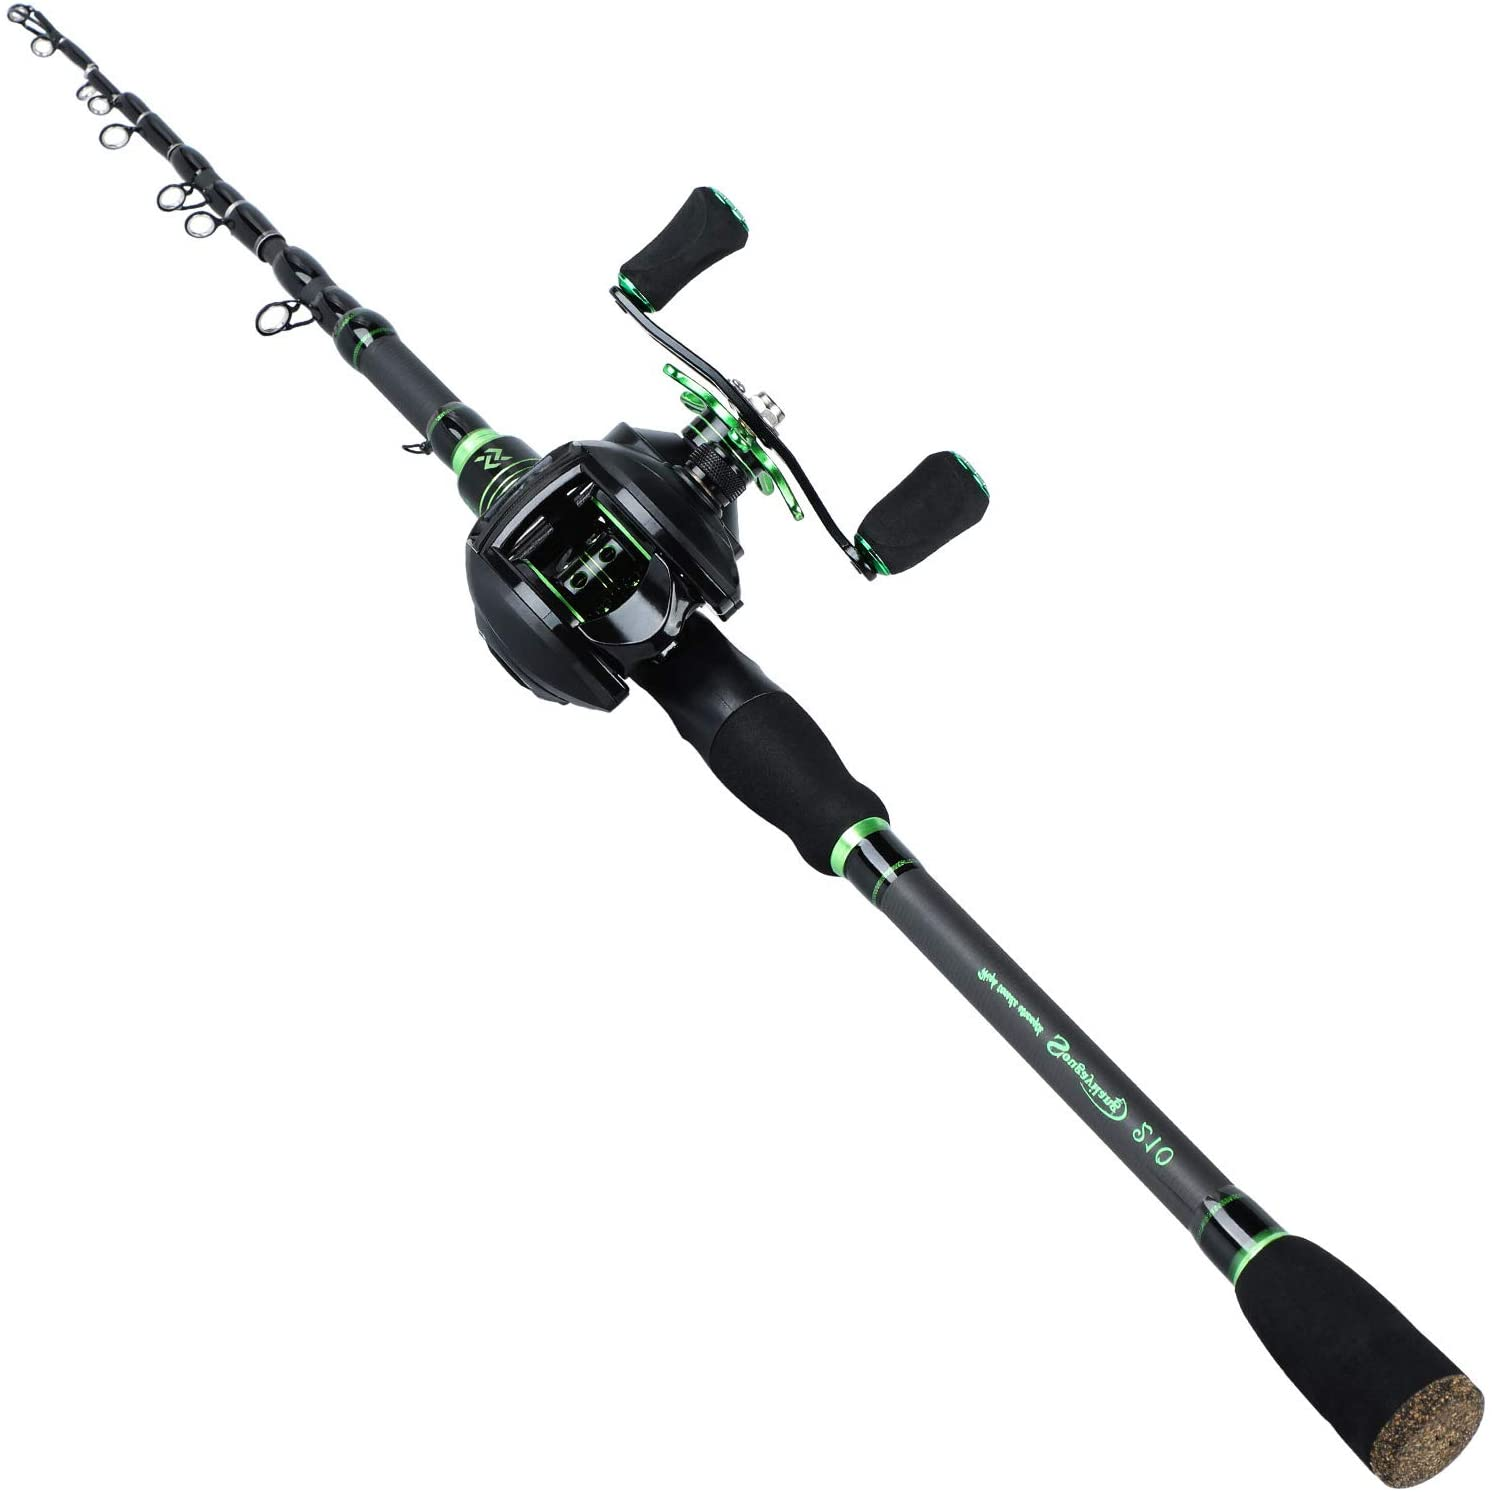 Amazon.com : Sougayilang Fishing Rod Reel Combos with Telescopic